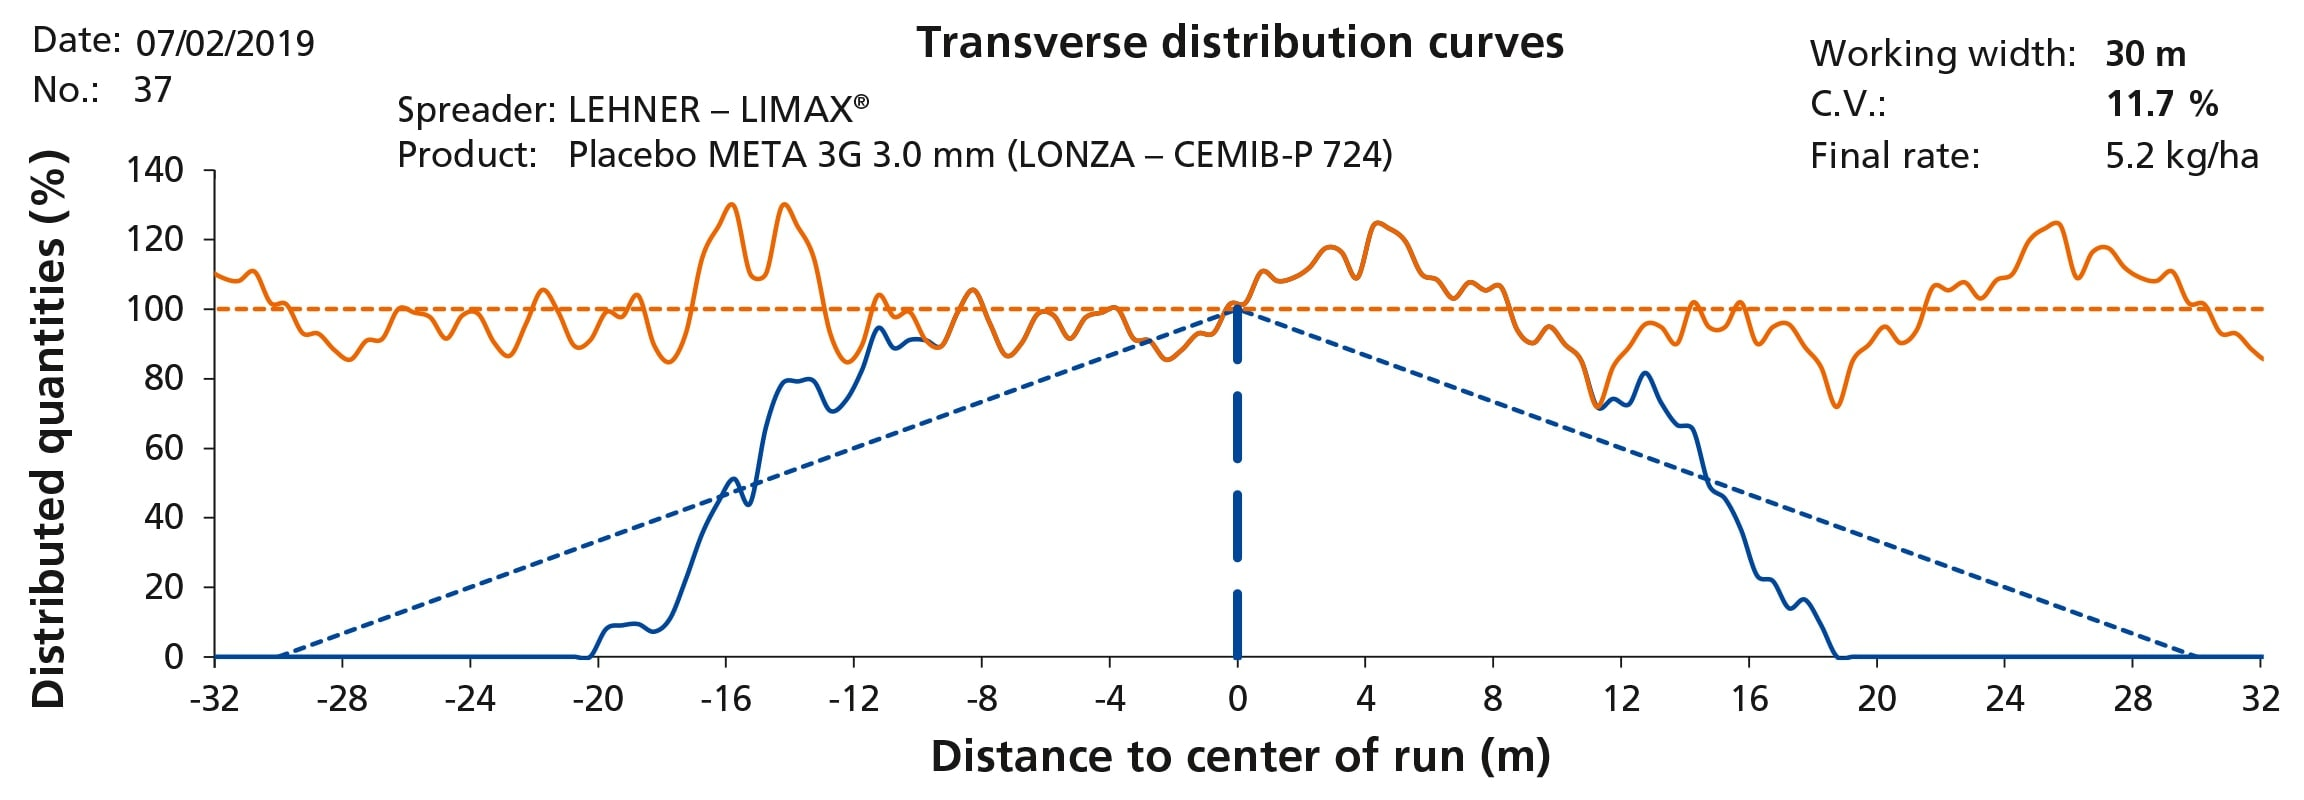 Coefficient of variation 11.7 % at 28m spreading width